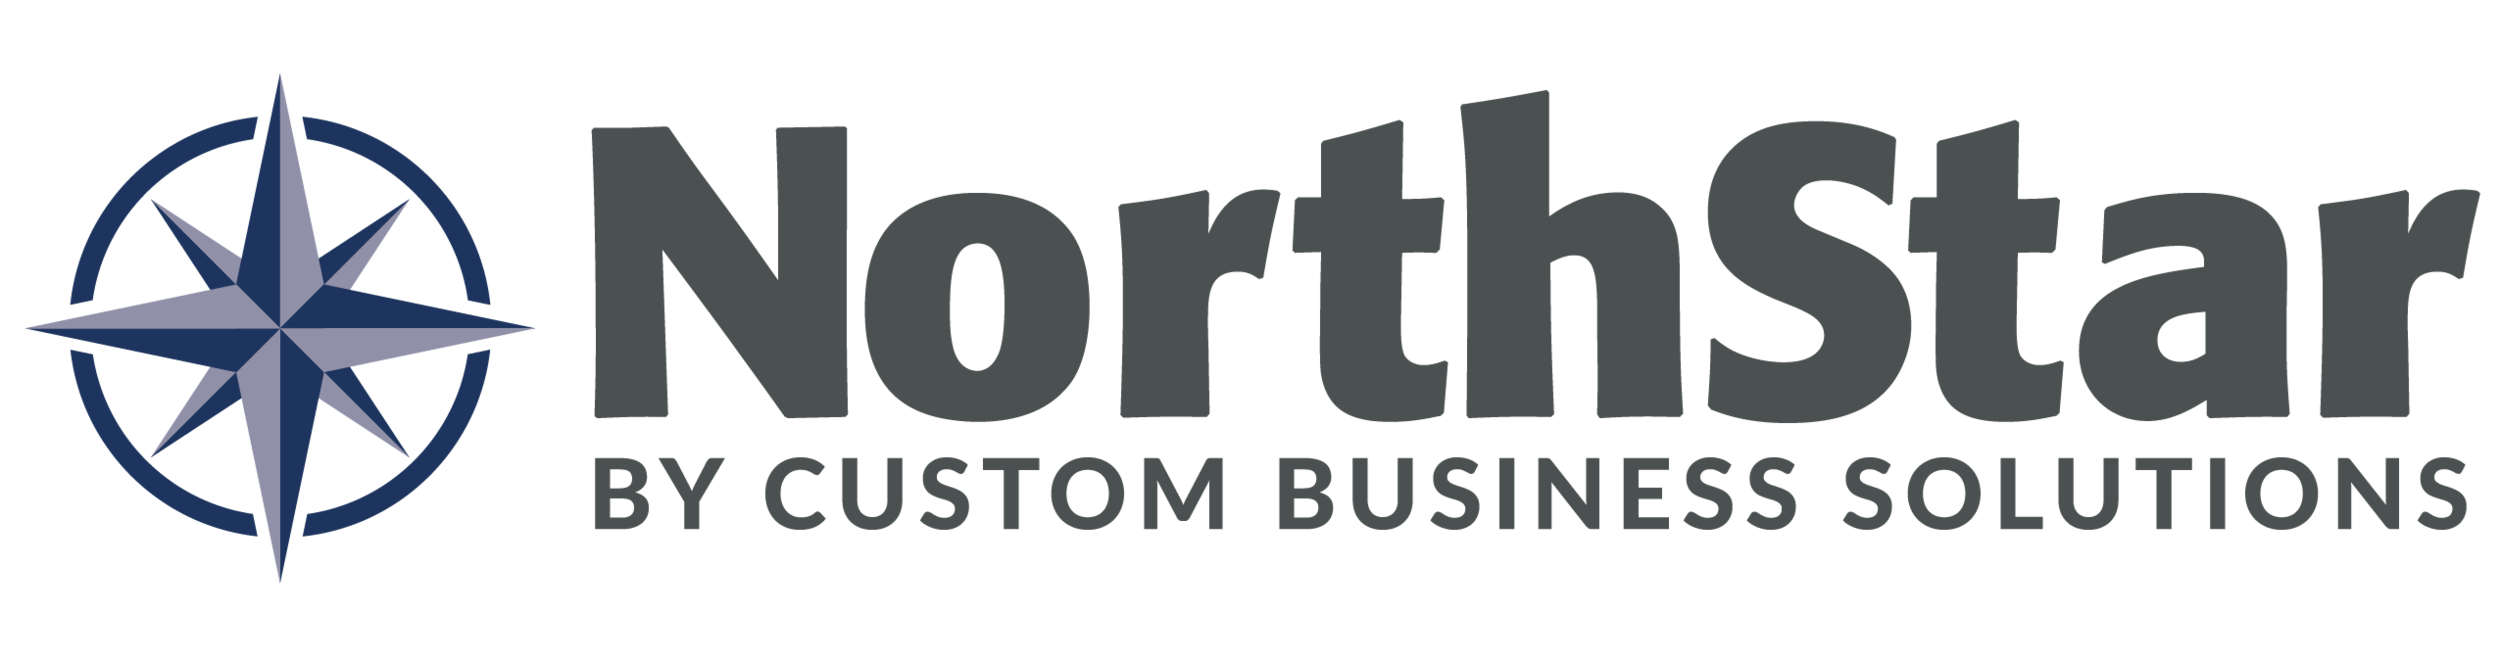 North Star POS by Custom Business Solutions, INC.